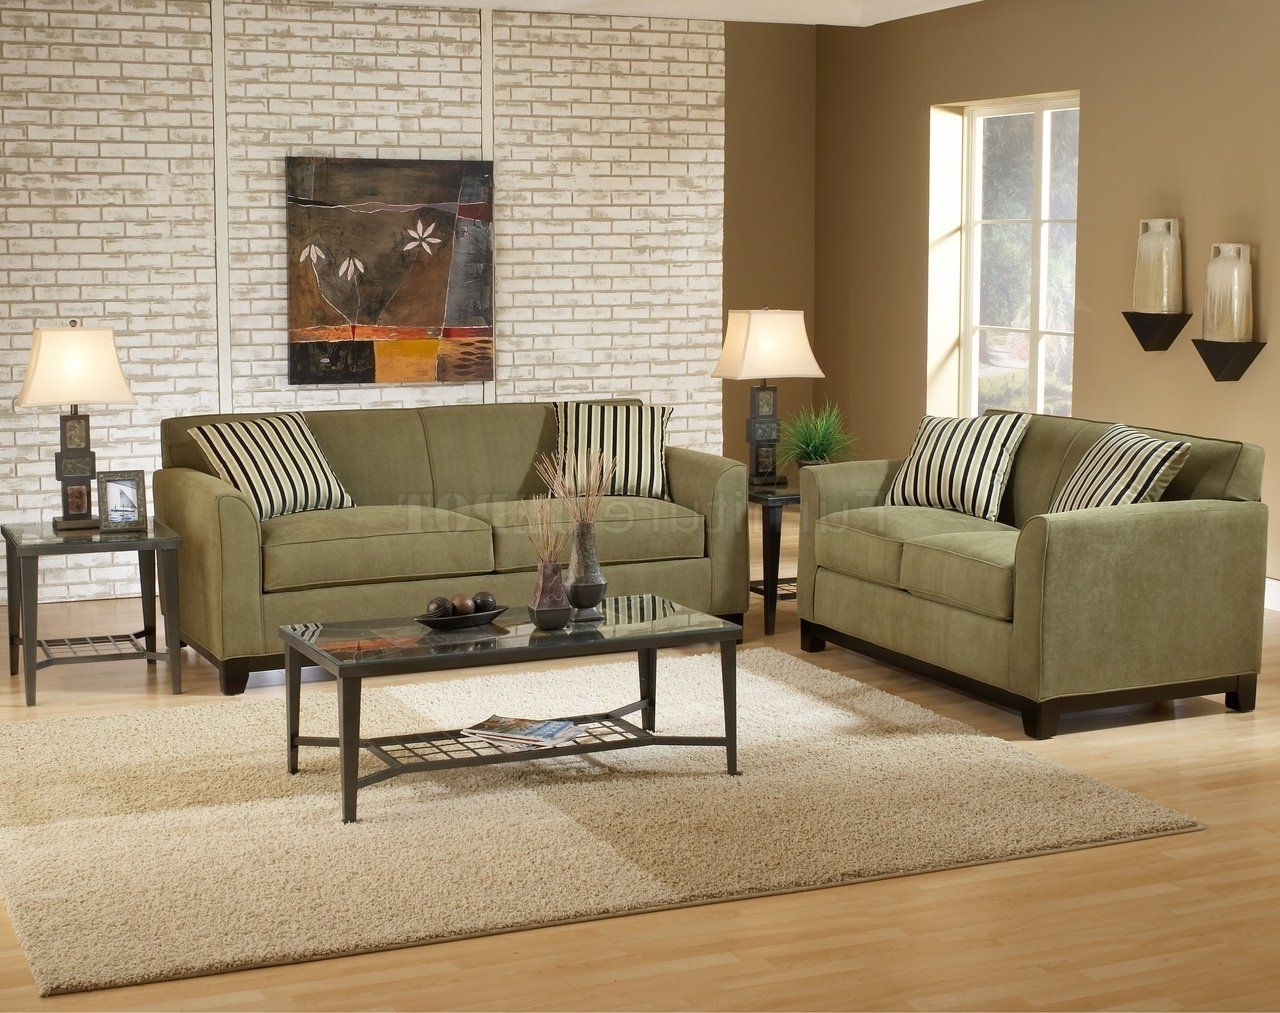 Sage Fabric Casual Modern Living (View 8 of 15)